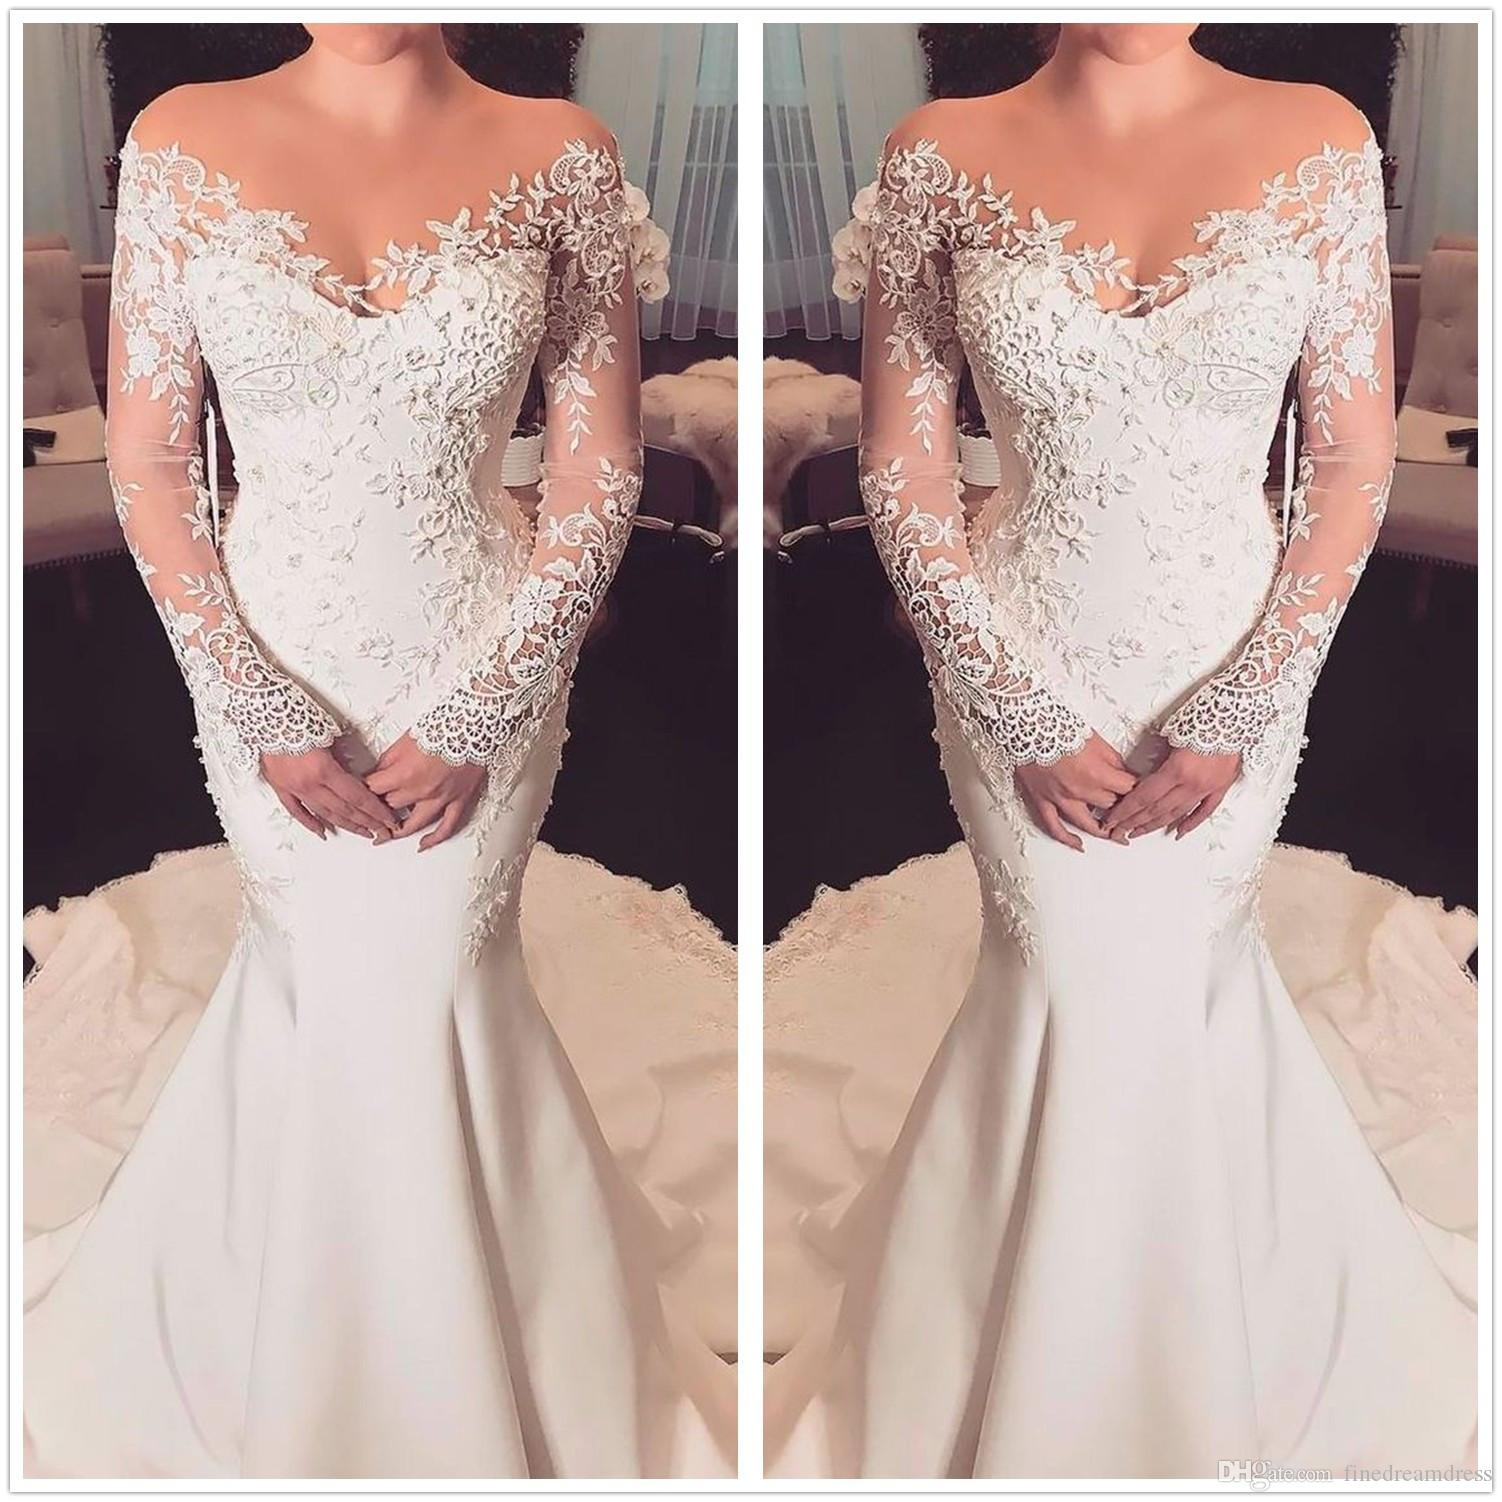 36bebd890326a 2018 Sheer Long Sleeves Lace Mermaid Wedding Dresses Mesh Top Lace Applique  Satin Sweep Train Wedding Bridal Gowns Long Sleeve Wedding Dresses Plus  Size ...